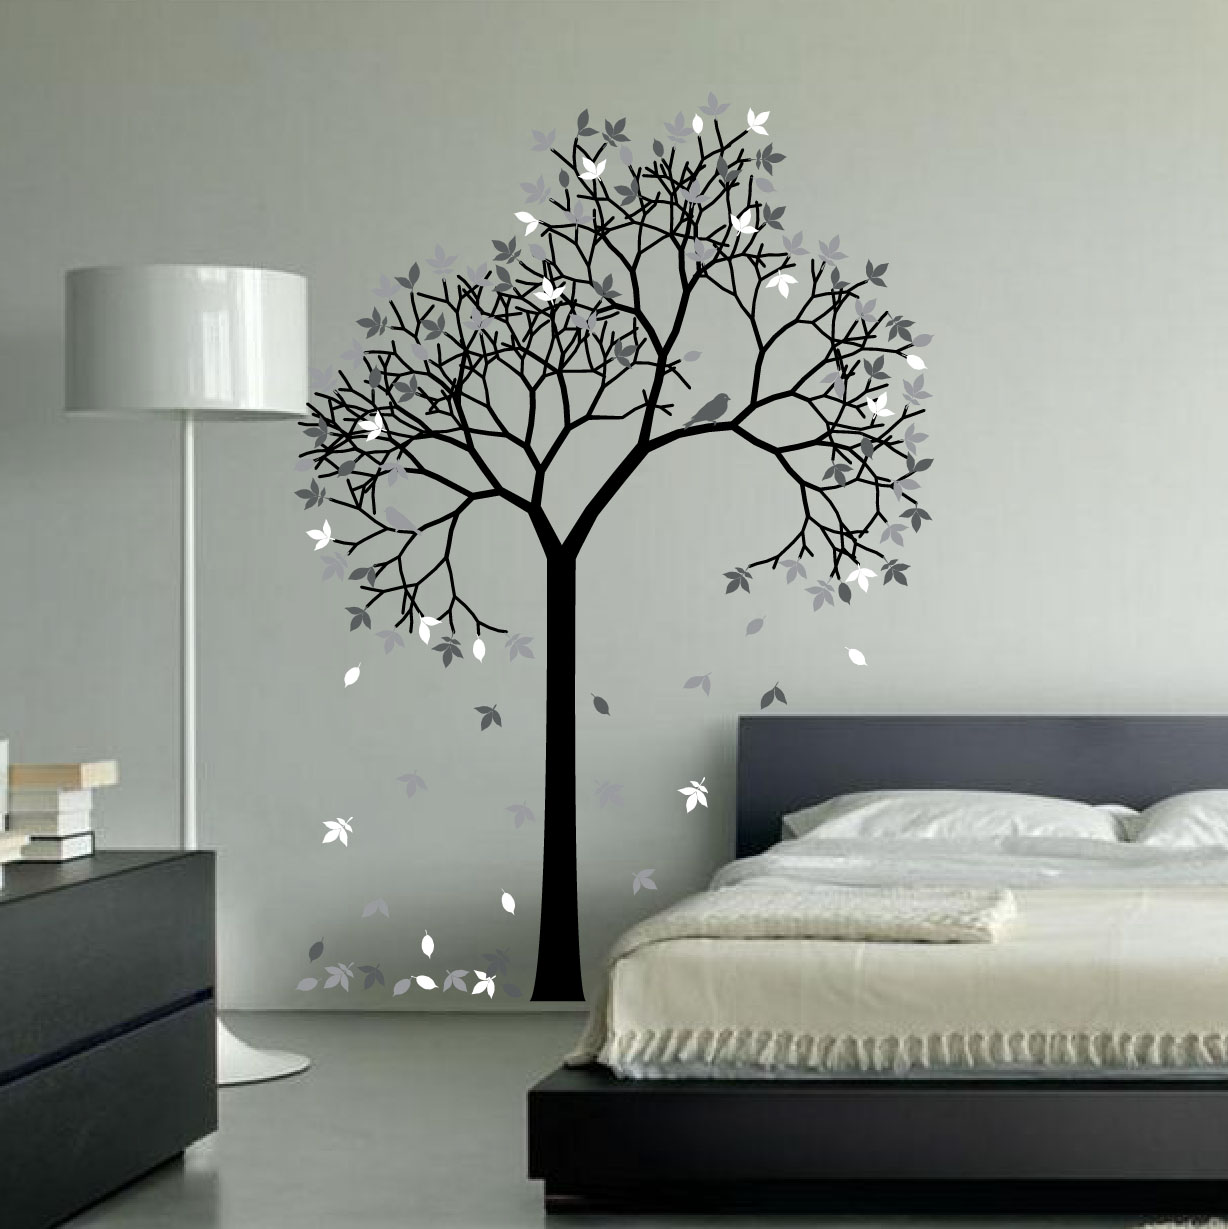 Aspen tree wall decal sticker vinyl nursert art leaves and birds 1267 innovativestencils - Decorative wall sticker ...